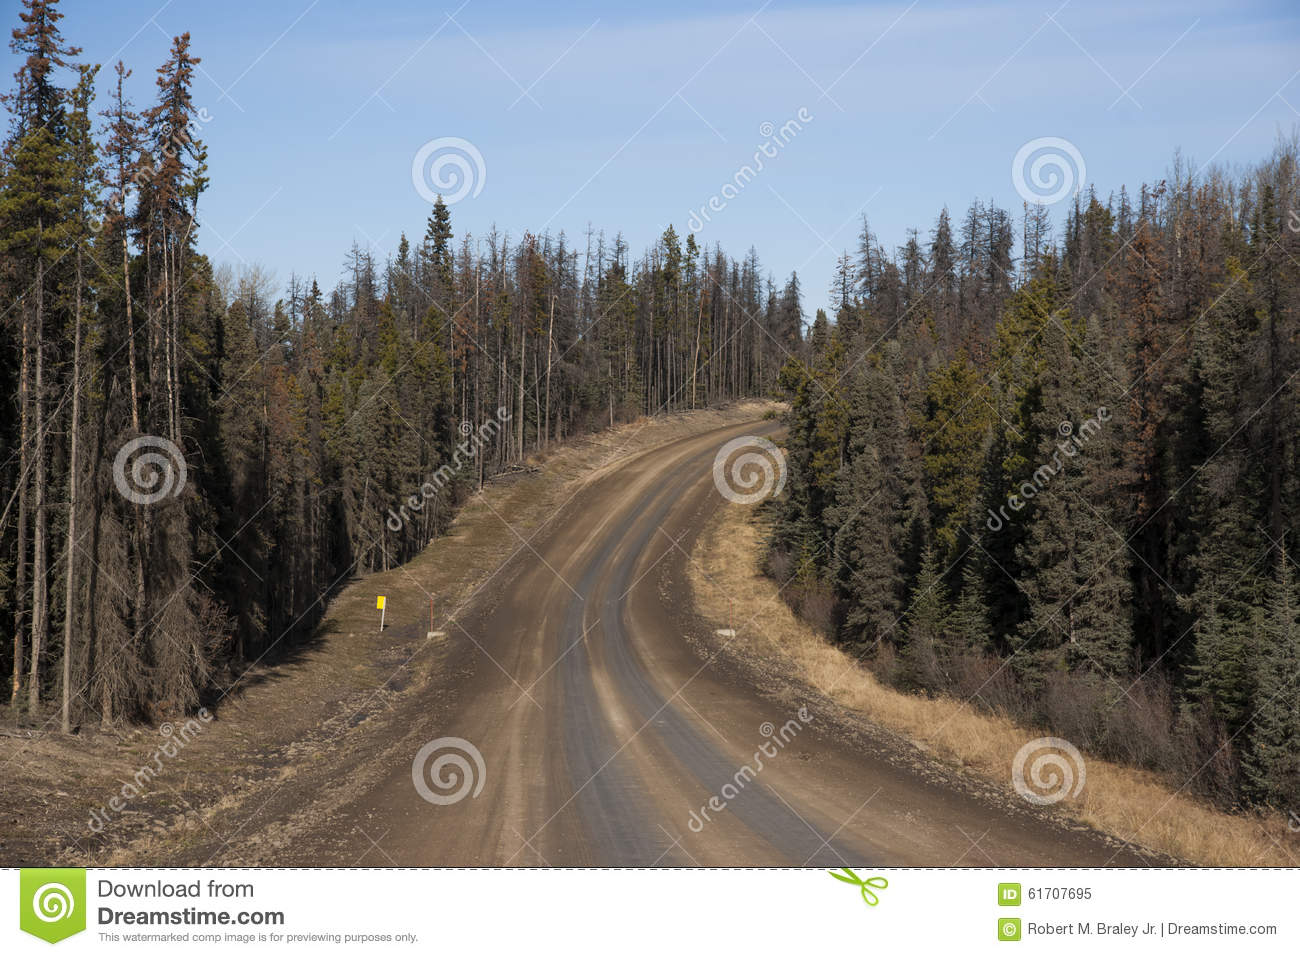 Download Alaska Highway Canada Suicide Trail Stock Image - Image of alaska, fall: 61707695